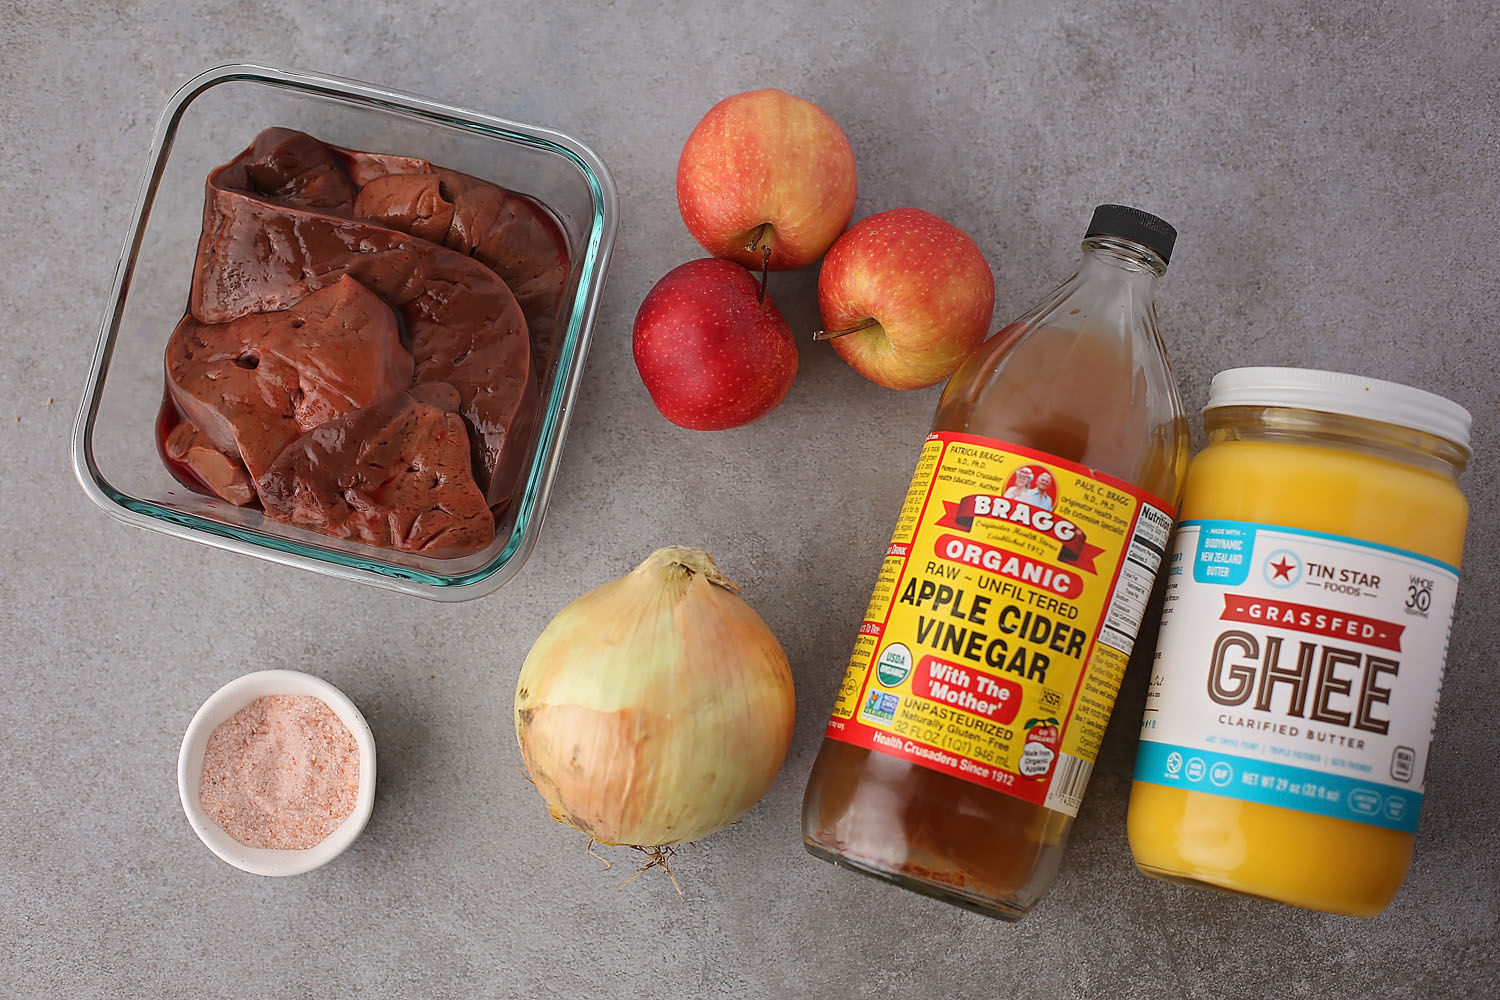 ingredients to make Liver and Onions with Apples